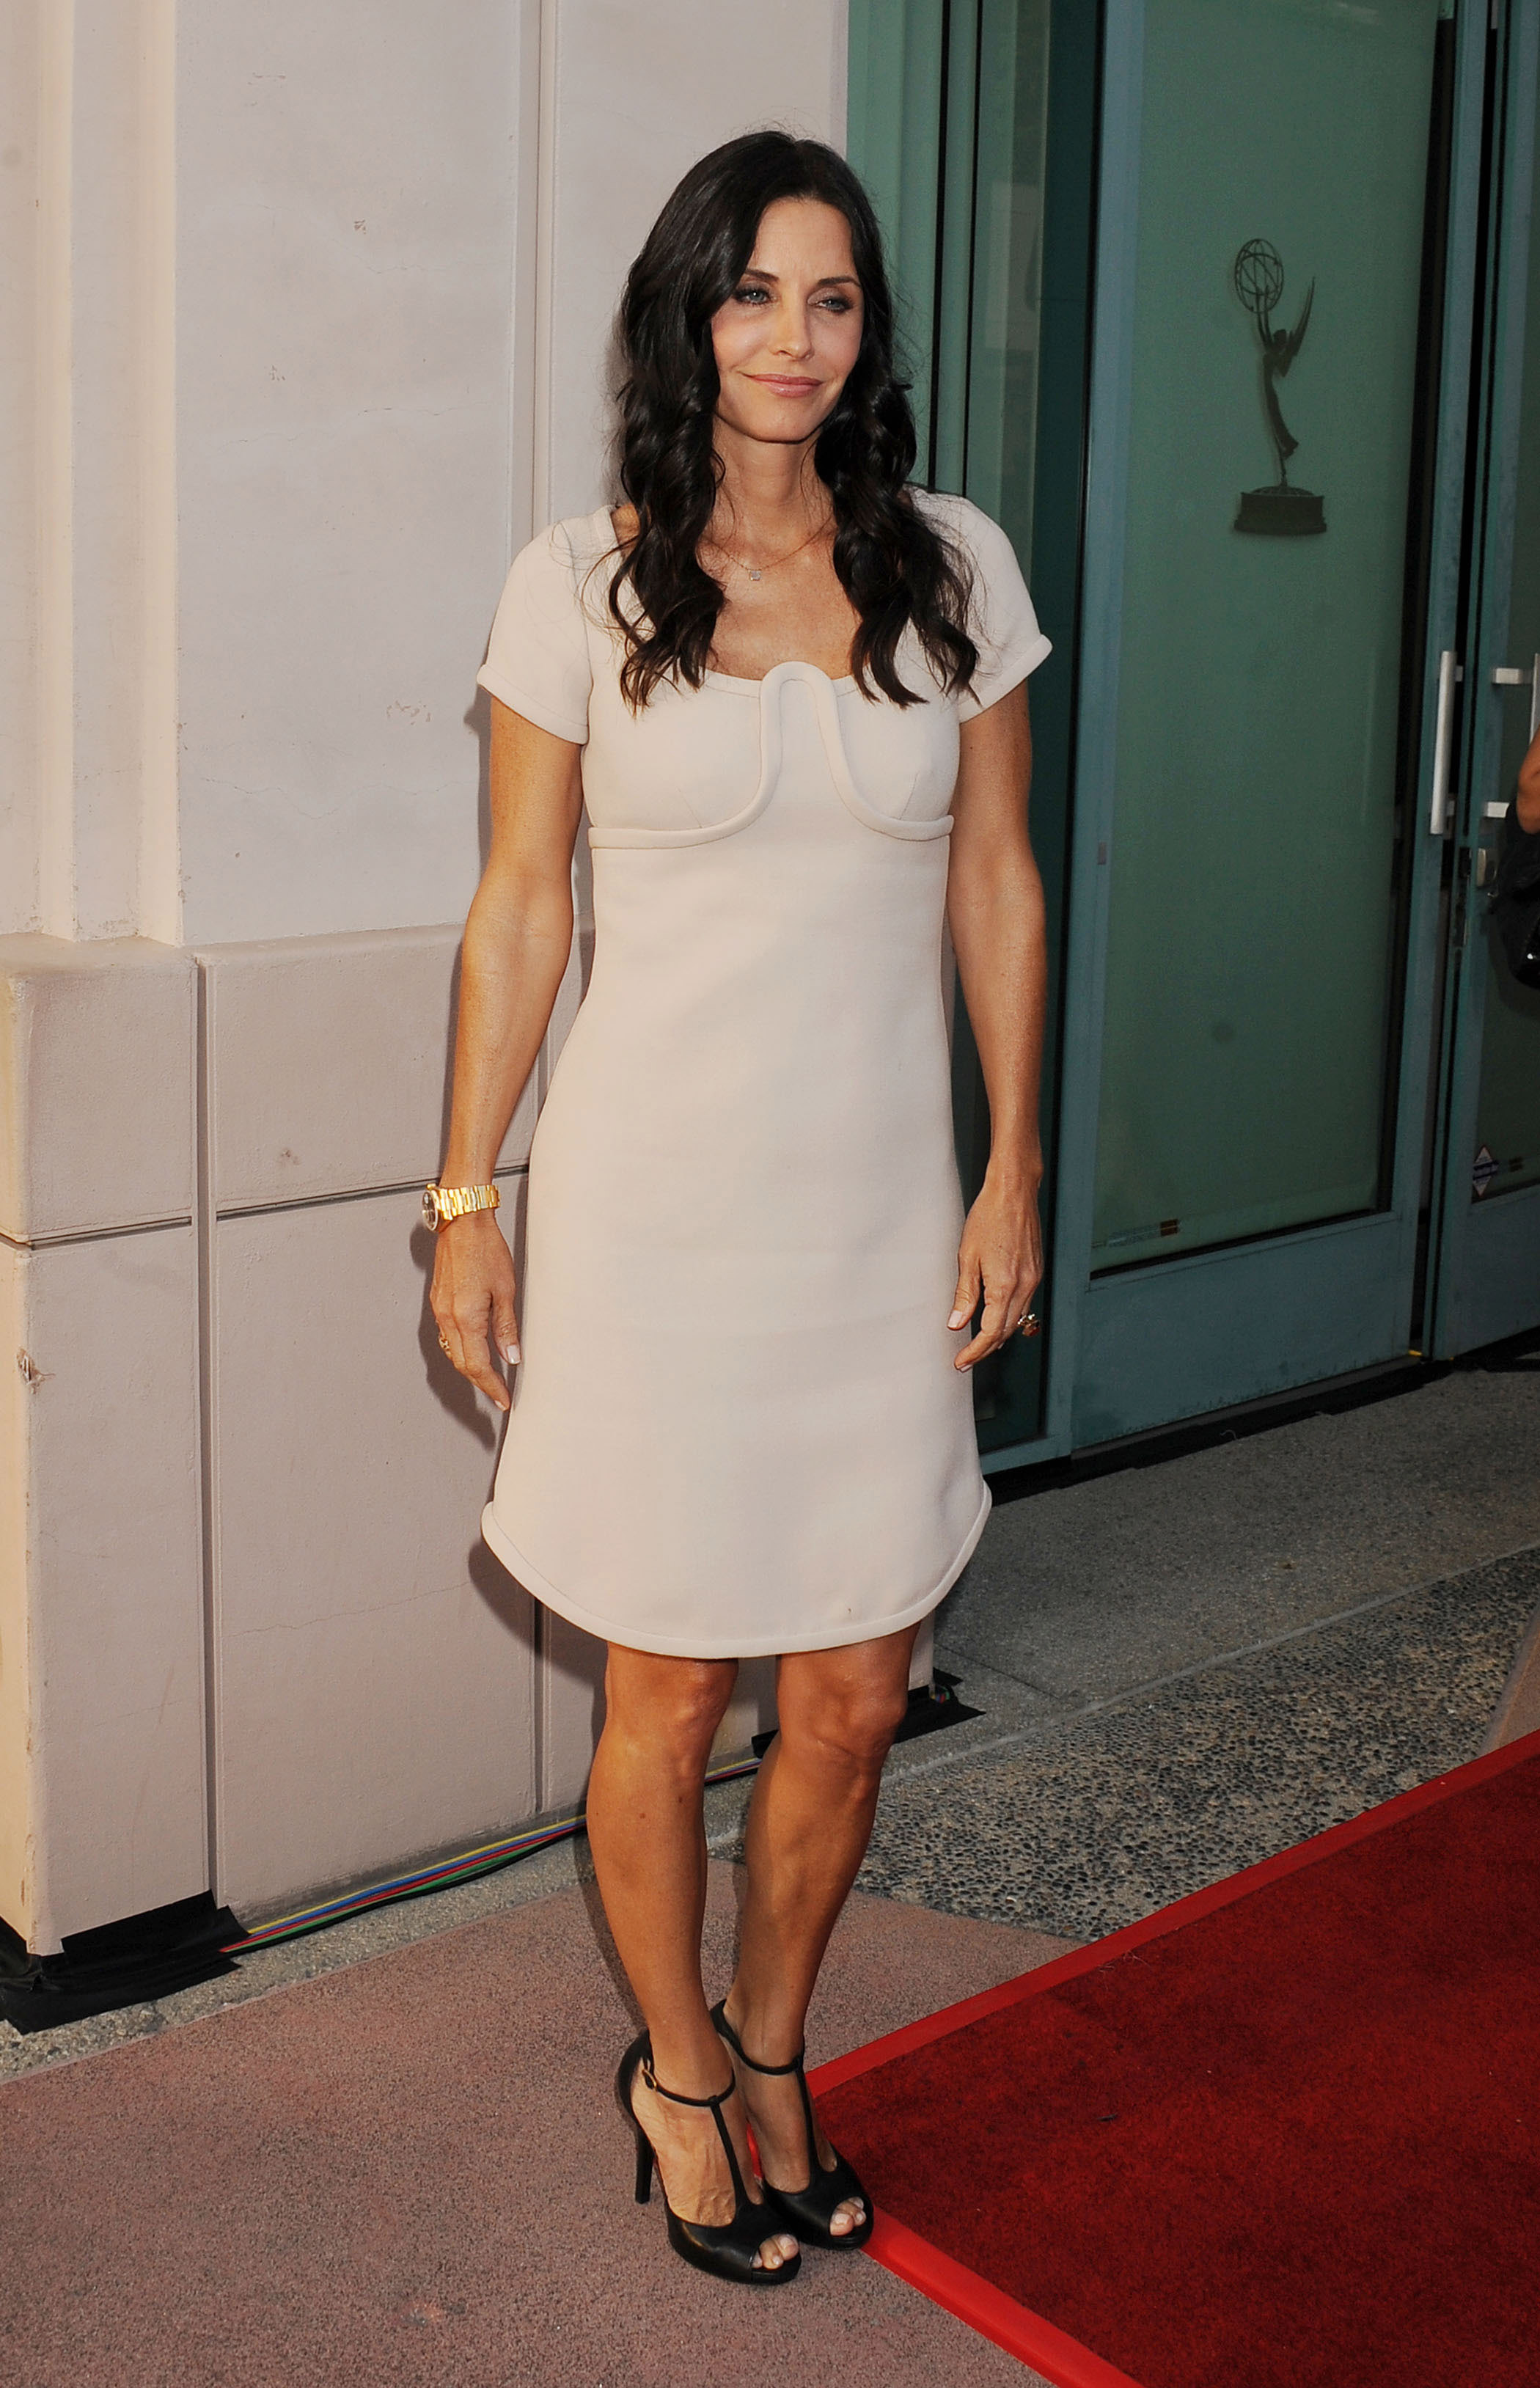 Courteney cox ed b on sports for Cox at home